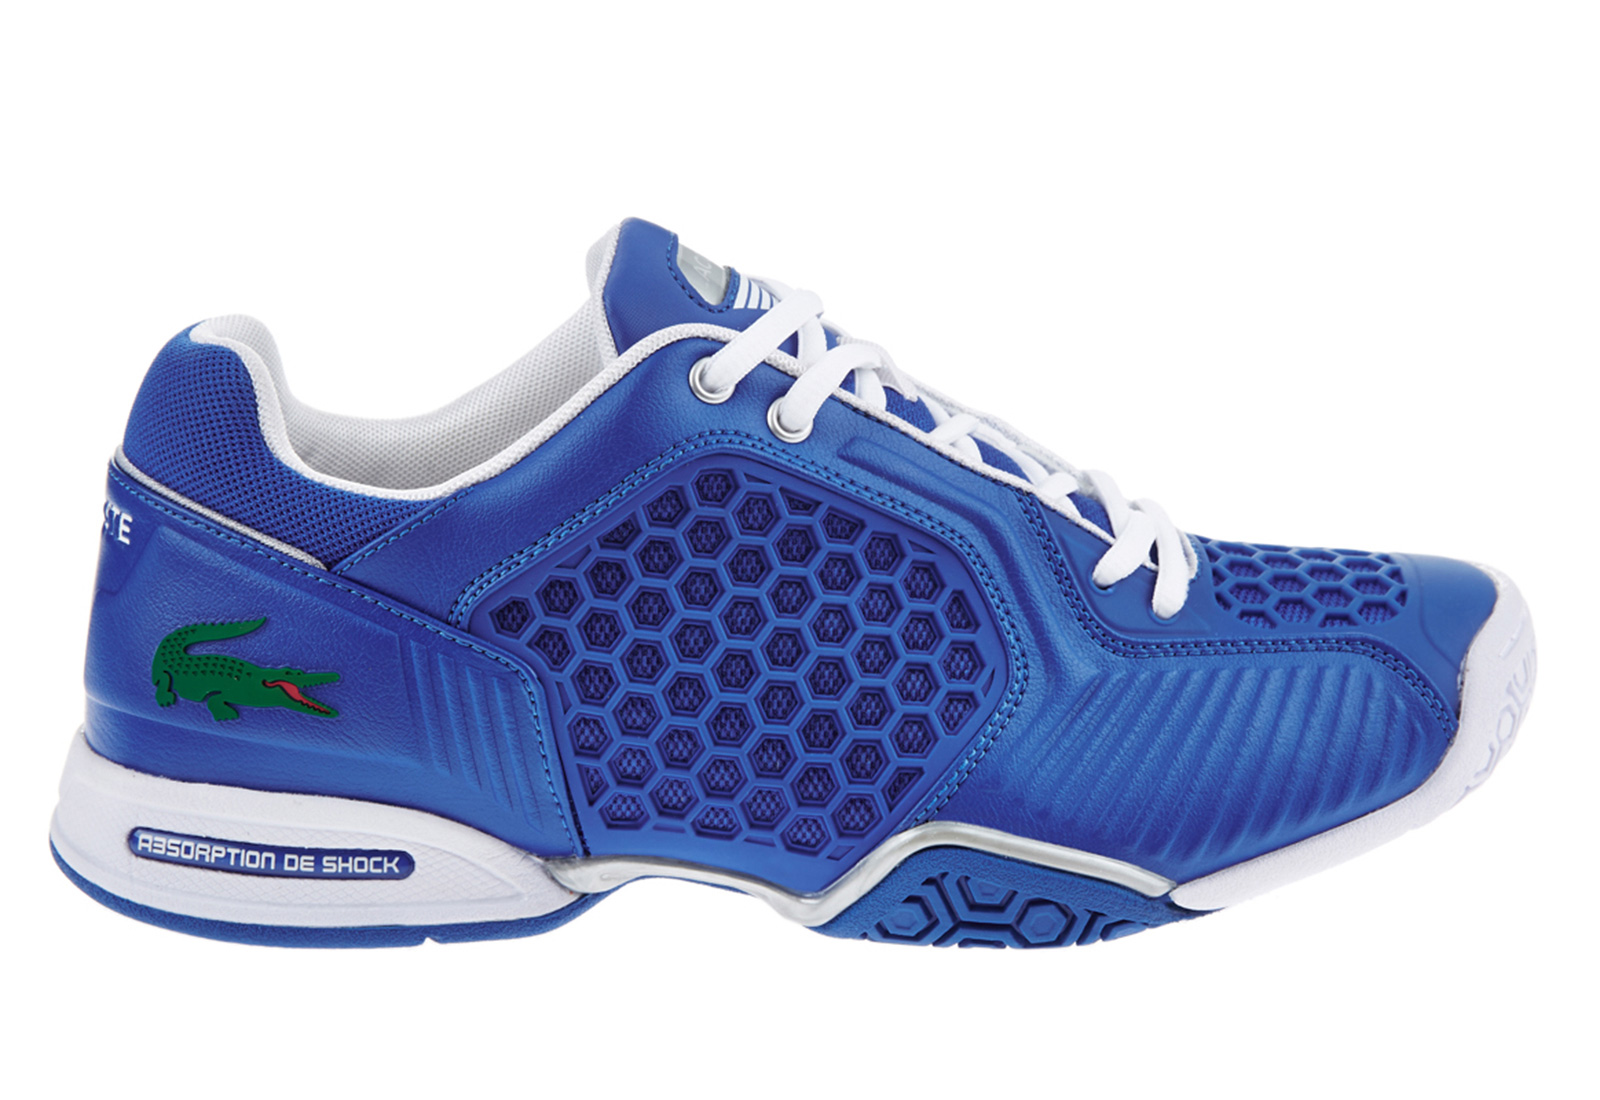 30895b95fee Lacoste Shoes - Repel 2 Res - zx-spm0070221 - Online shop for ...